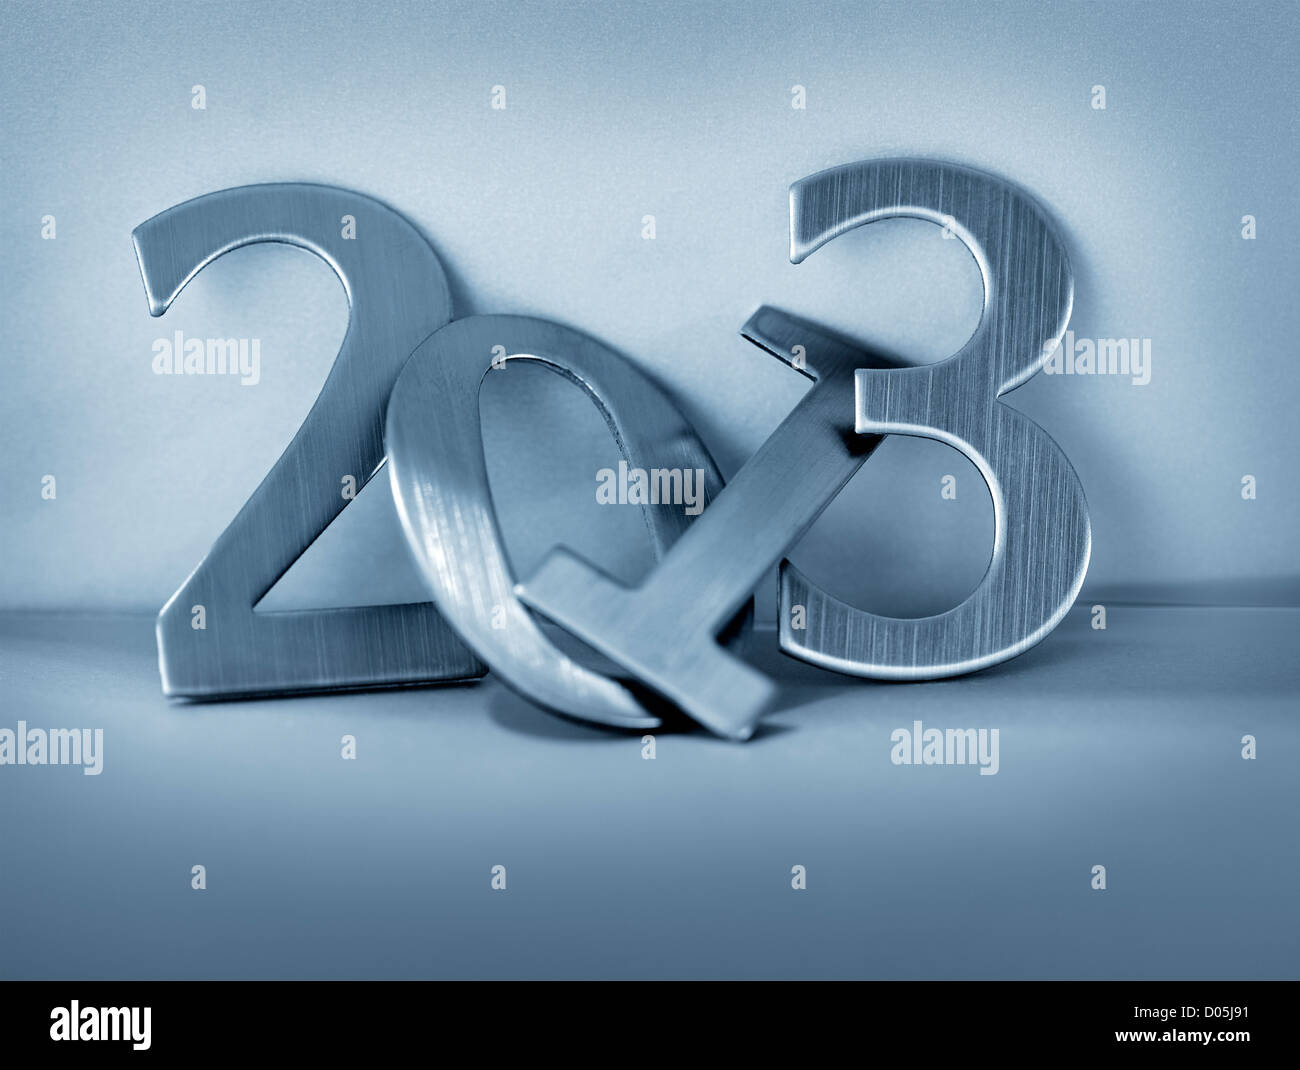 Metallic numbers for year 2013. Short depth-of-field. Note: the background may appear grainy, that's because - Stock Image